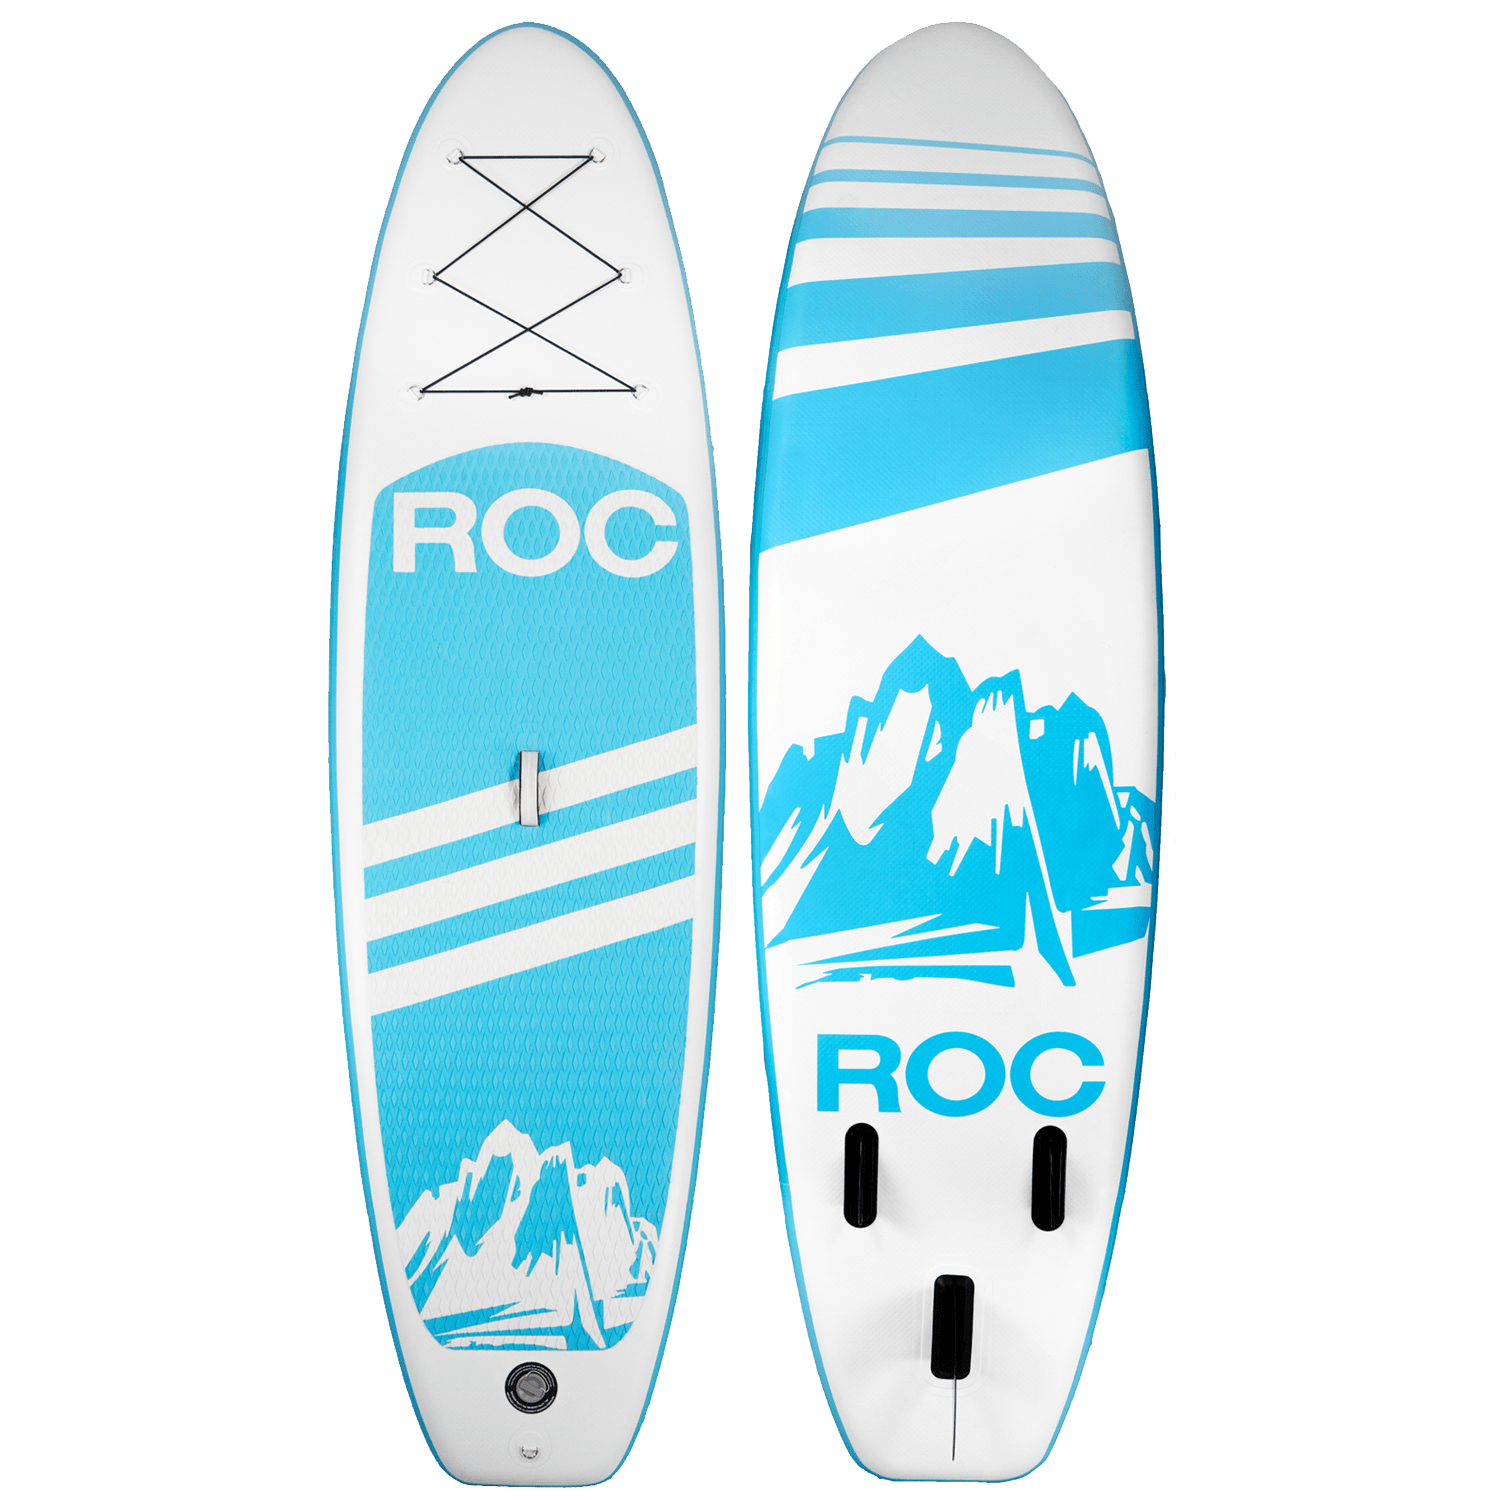 ROC Blue Inflatable Paddleboard